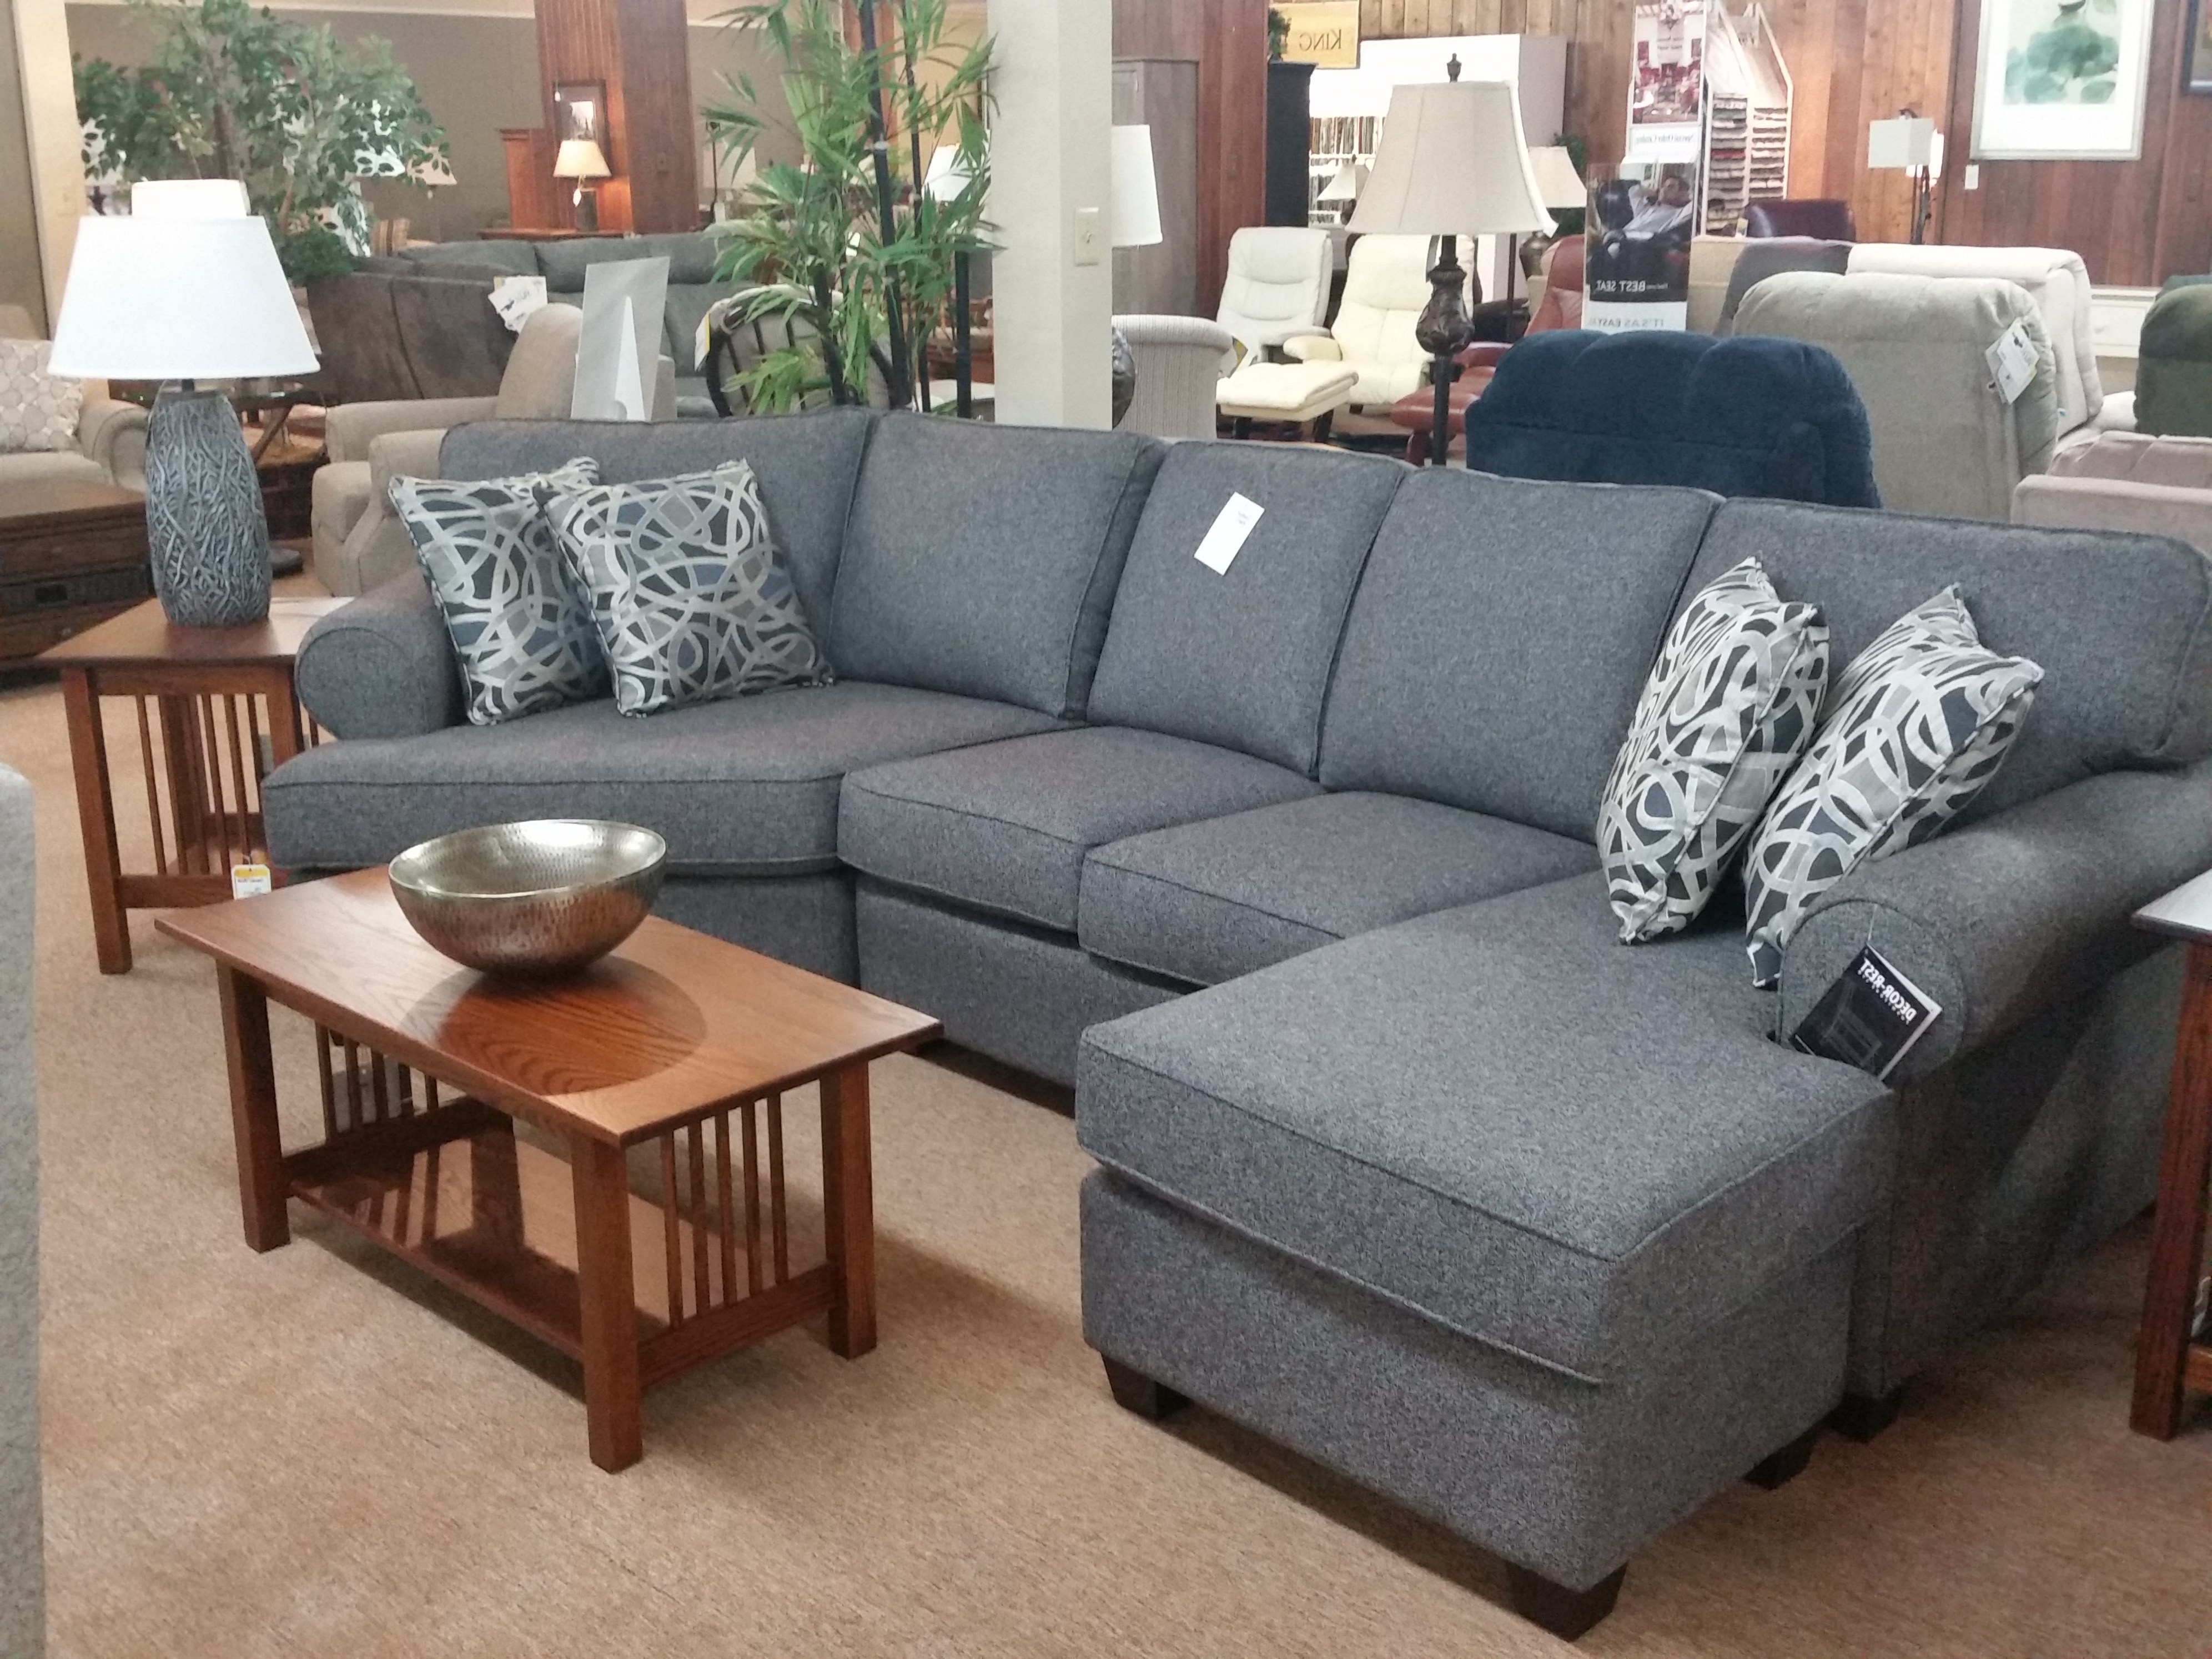 Furniture In Hickory Nc (View 5 of 15)